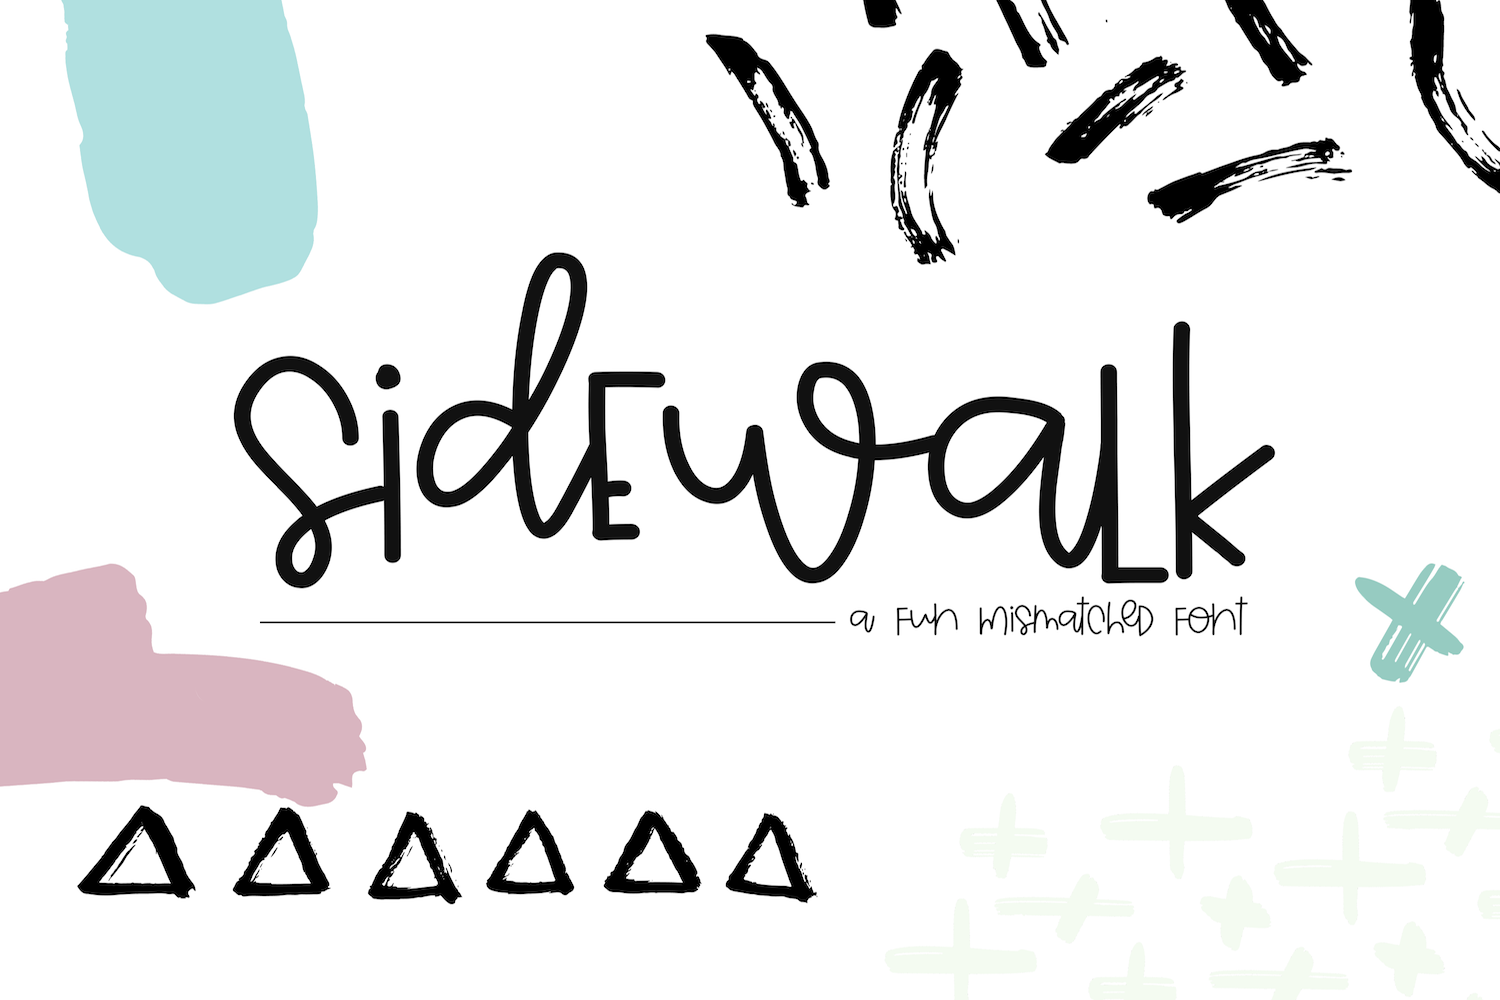 Sidewalk - A Fun & Mismatched Font example image 1